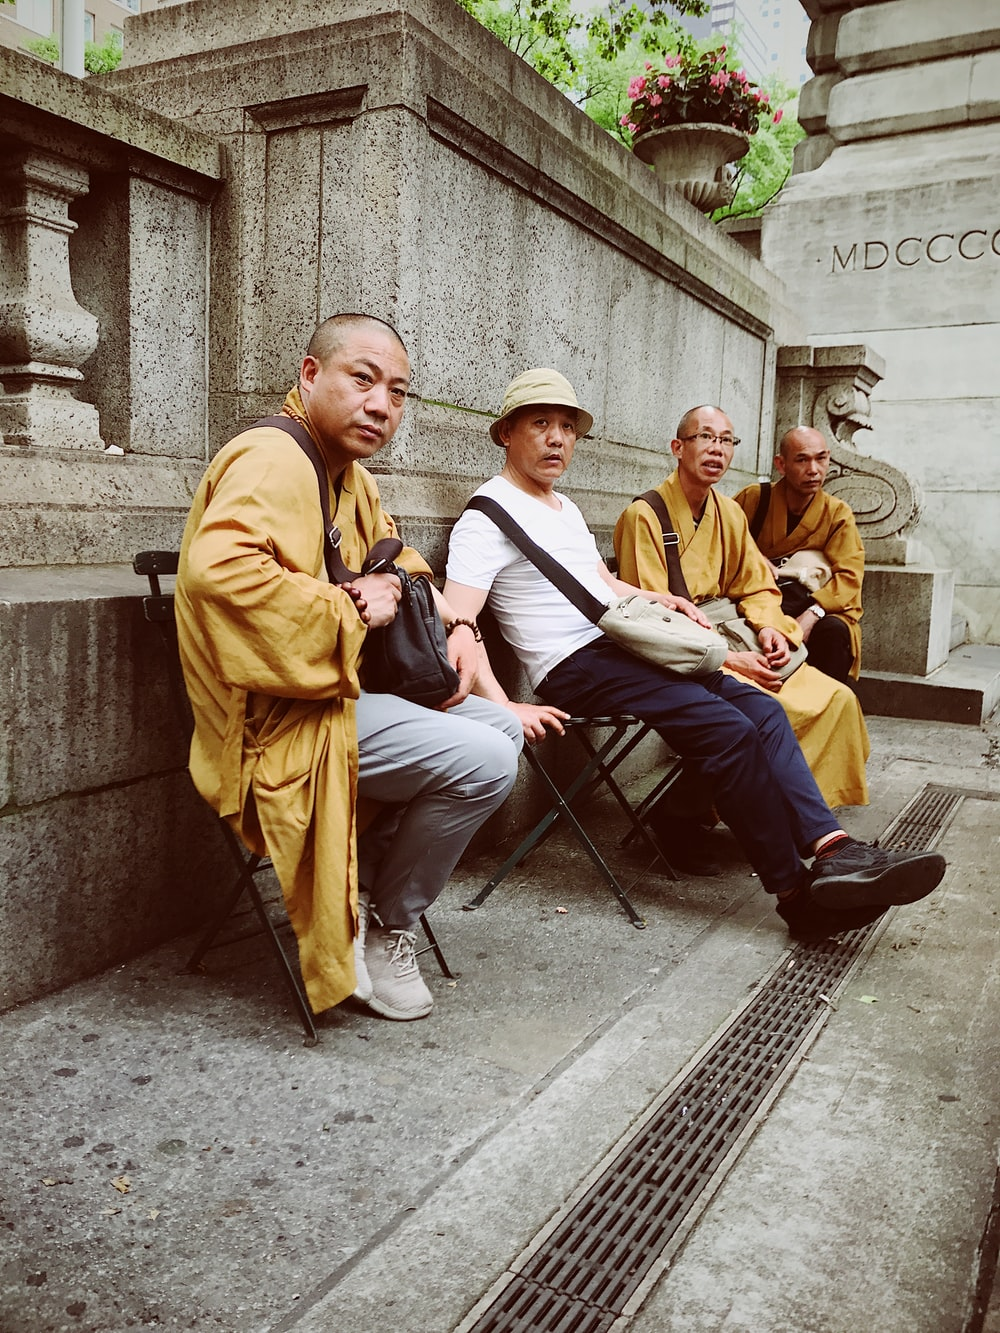 four men sitting on chairs outdoor during daytime